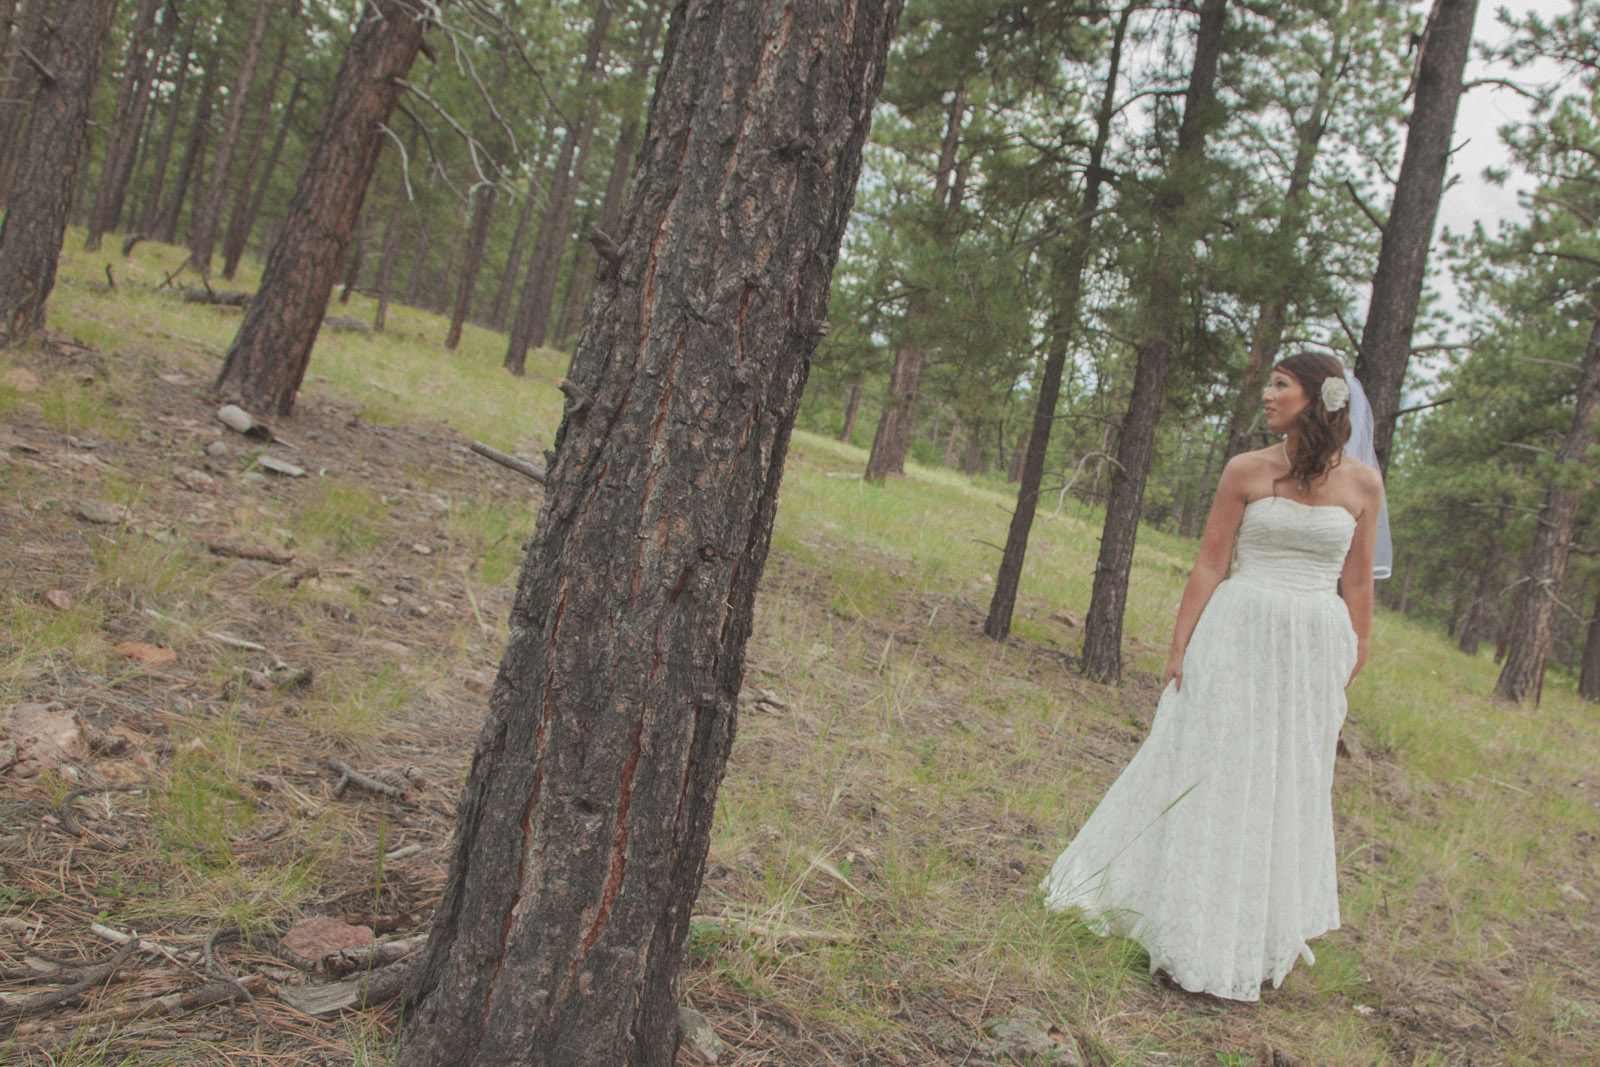 040-bride-wedding-wooden-woods-forest-pictures-photos-dress-photography-porttraits